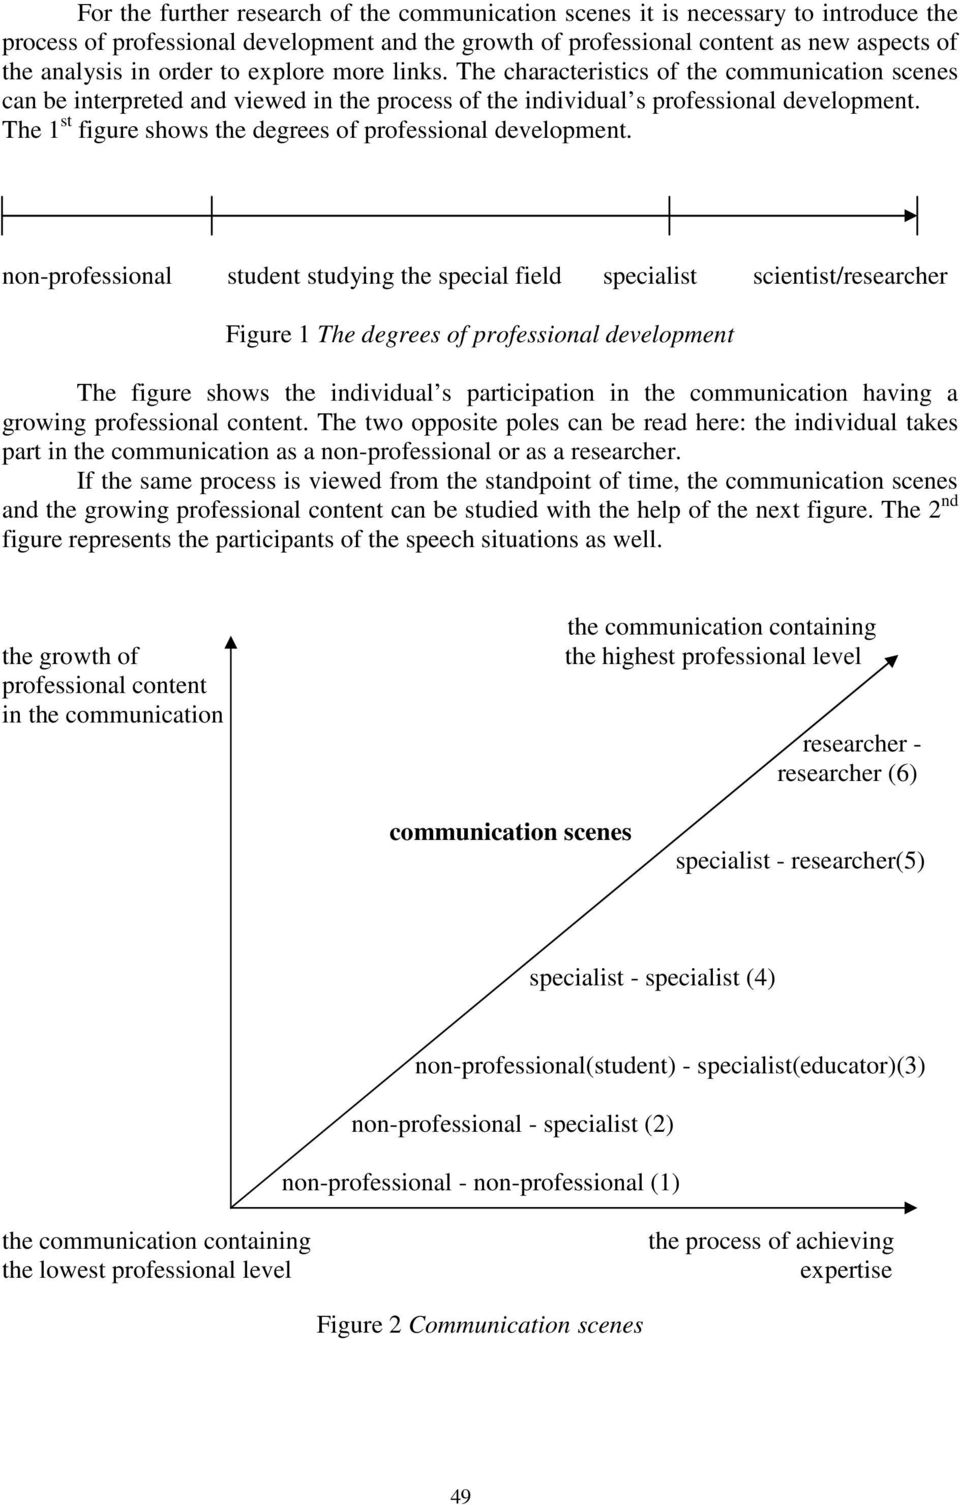 The 1 st figure shows the degrees of professional development.